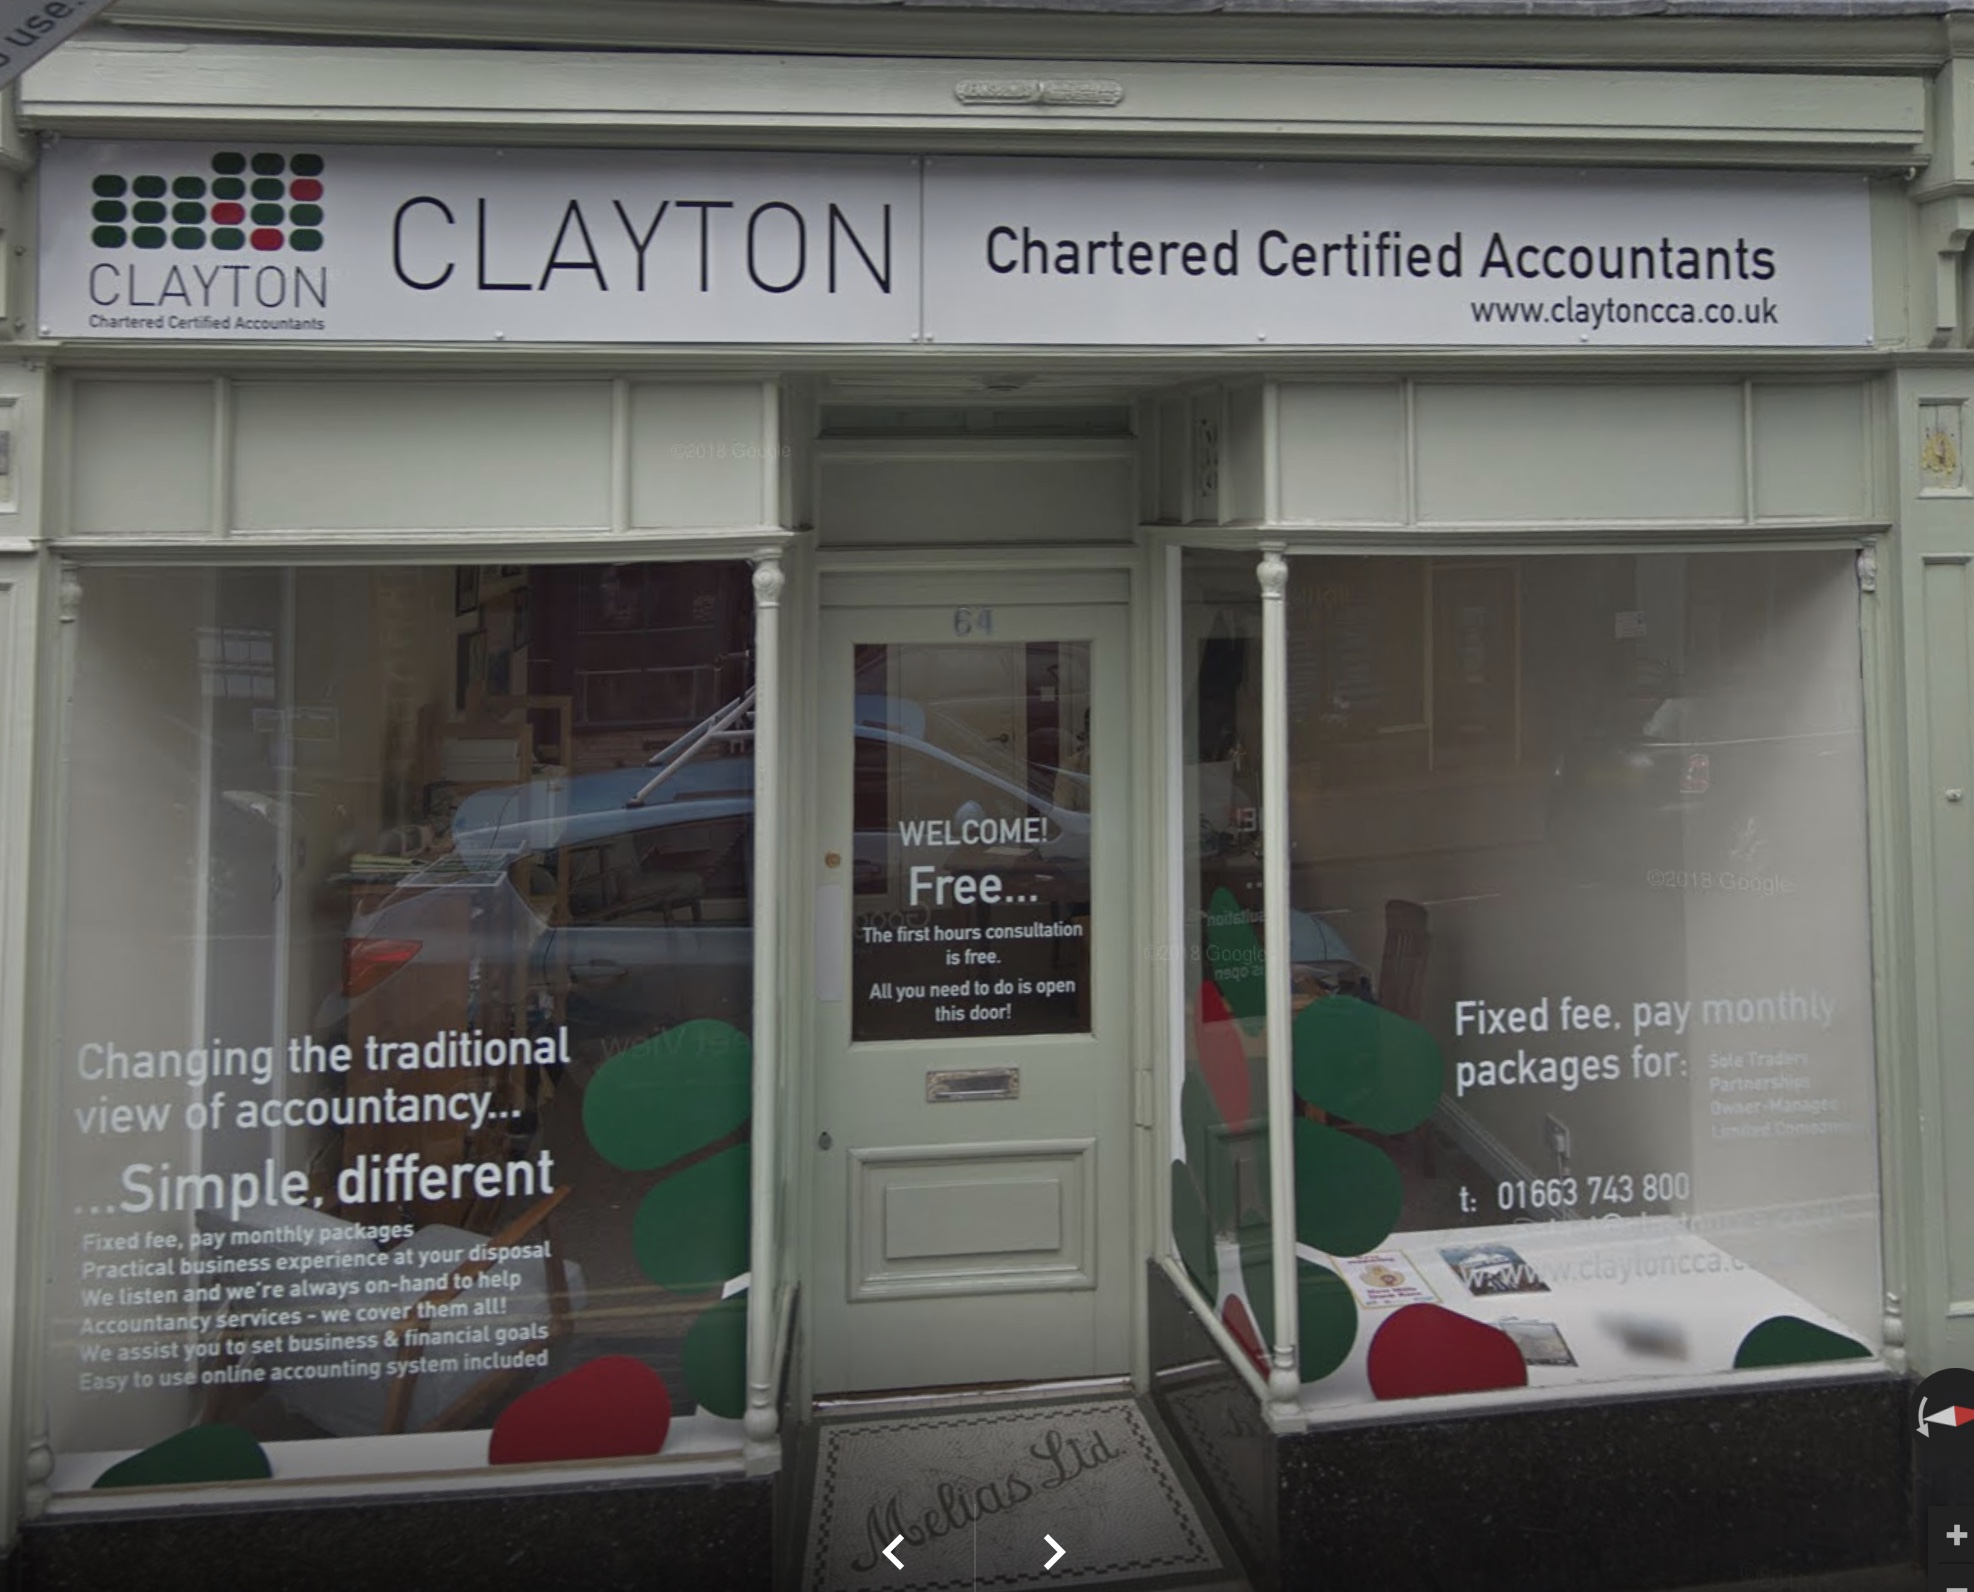 4. Claytons Insurance